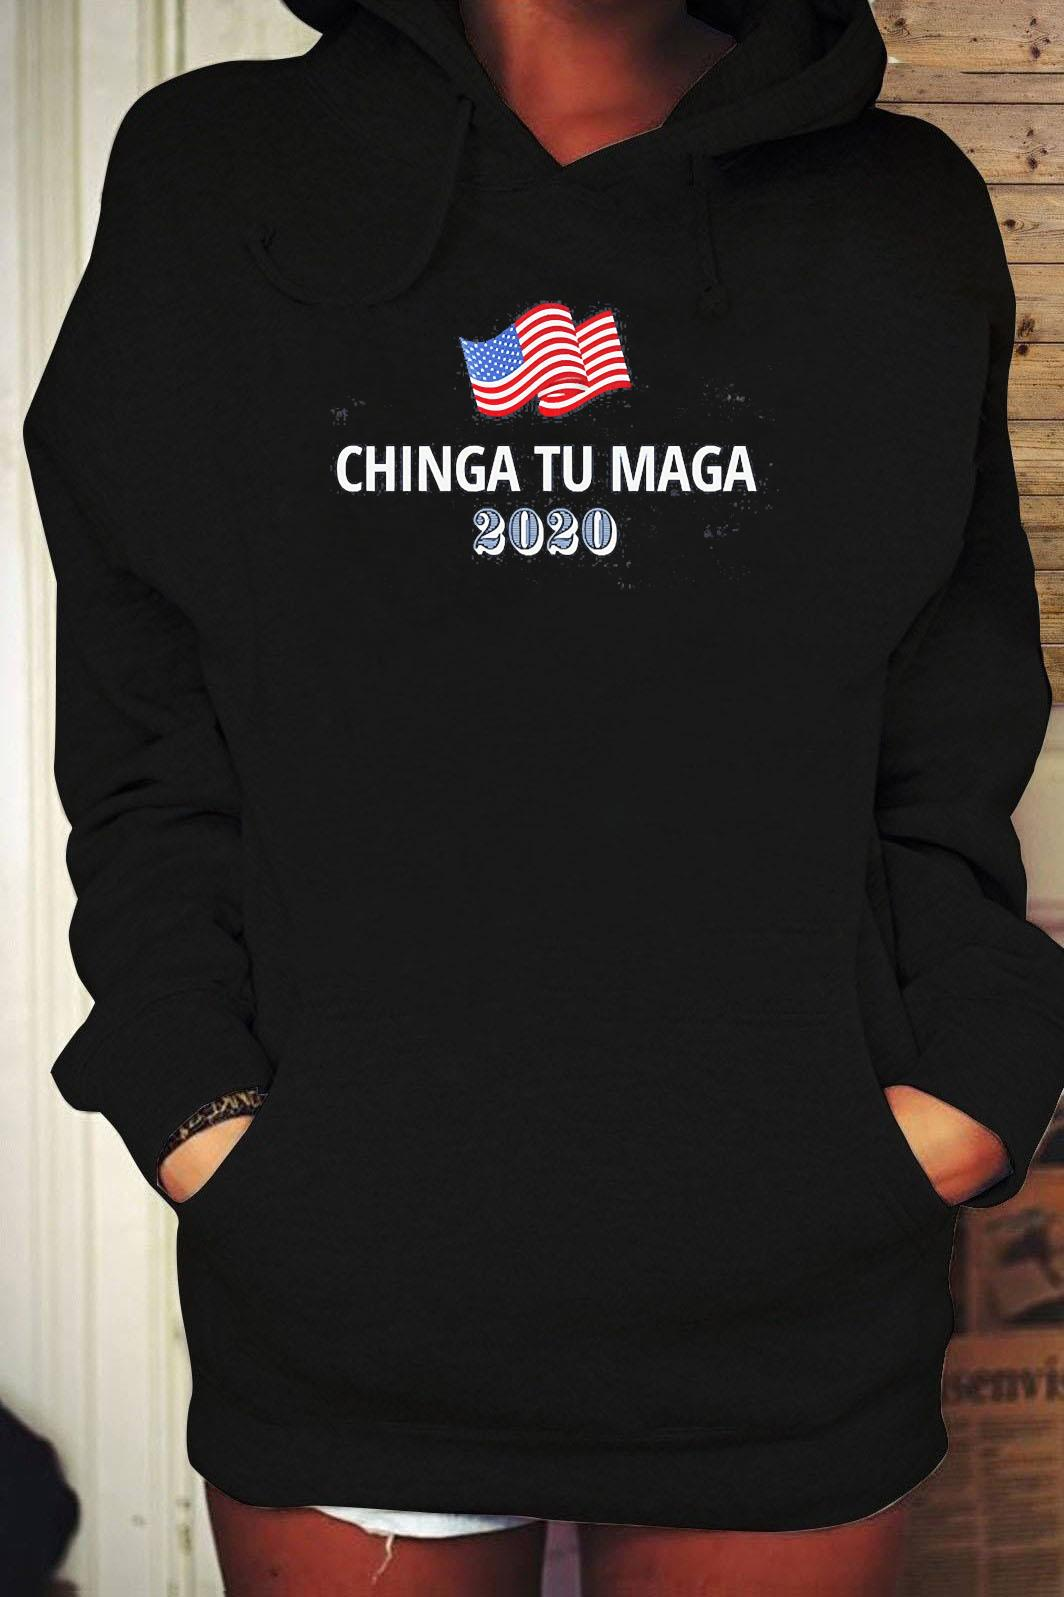 Chingatumaga Yard Sign Chingatumaga 2020 Yard Sign Election 2020 Vote Shirt Hoodie